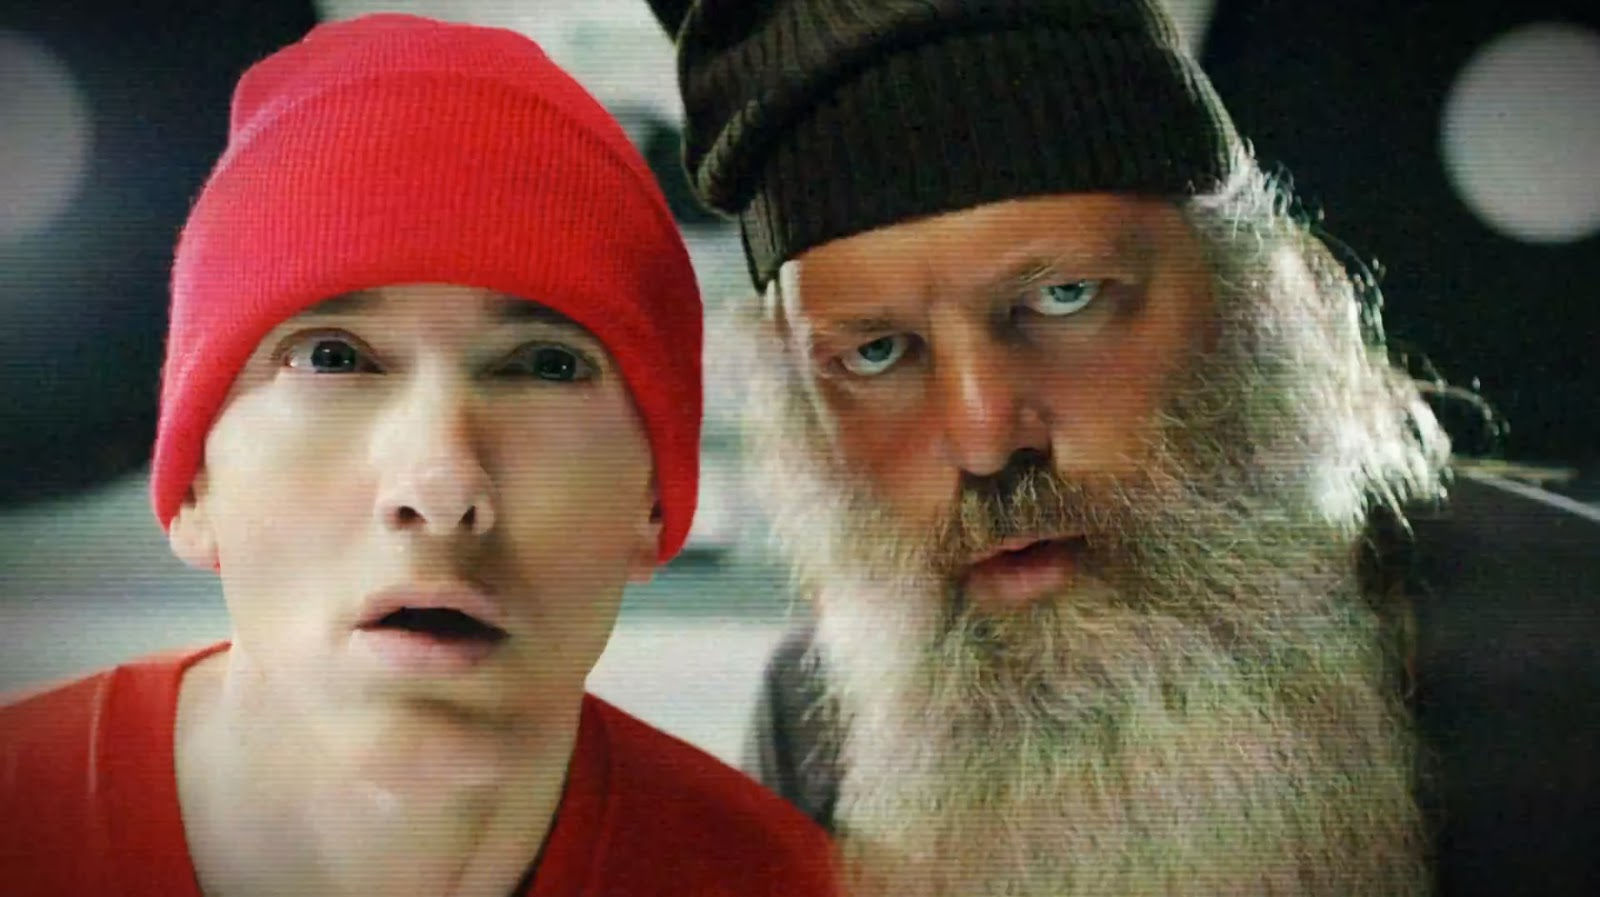 Eminem adn Rick Rubin are entertaining